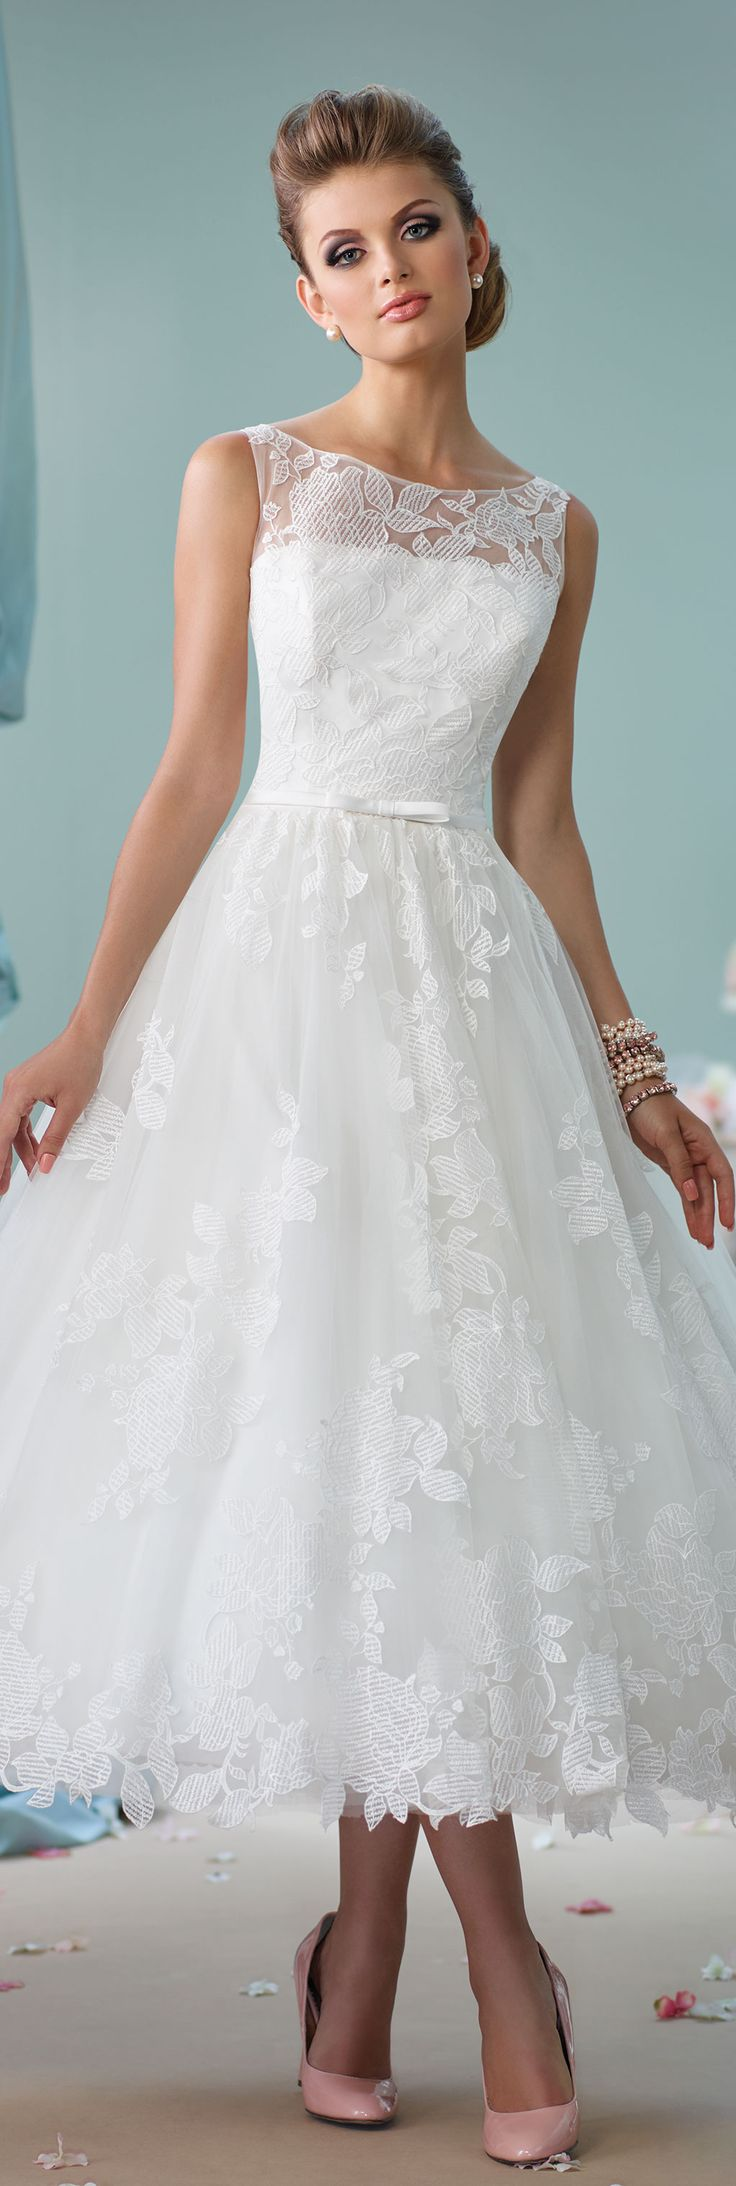 Best 25 white tea length dress ideas on pinterest white for Good wedding dresses for short brides